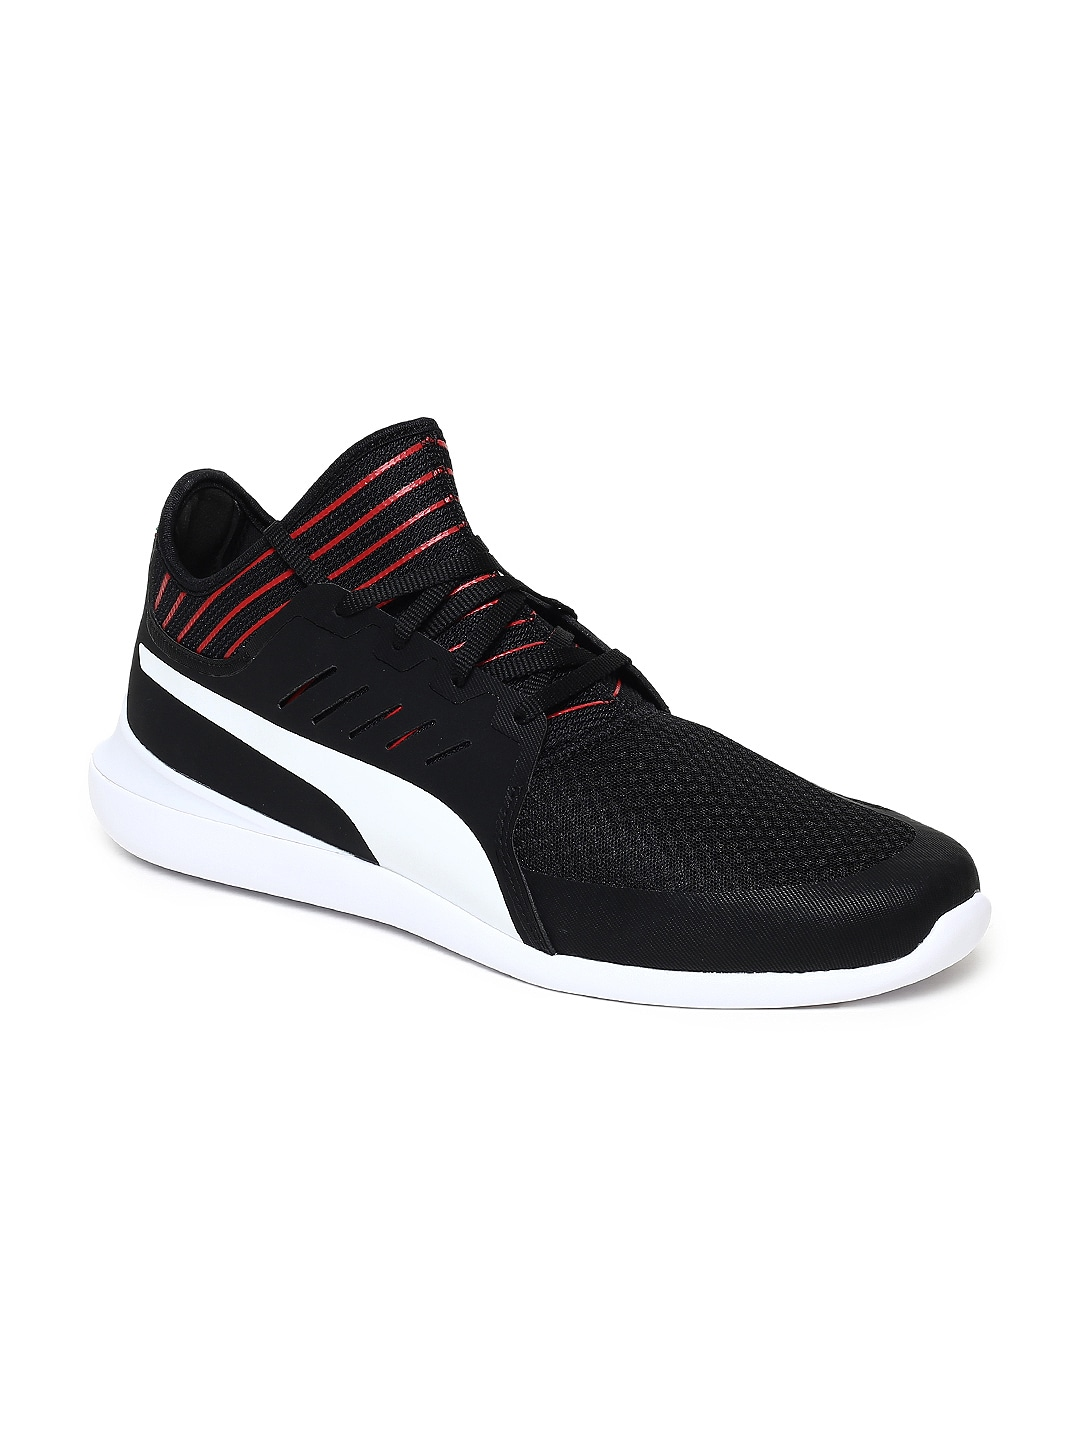 Puma Ferrari - Buy Puma Ferrari Products Online in India  99c97aa5e